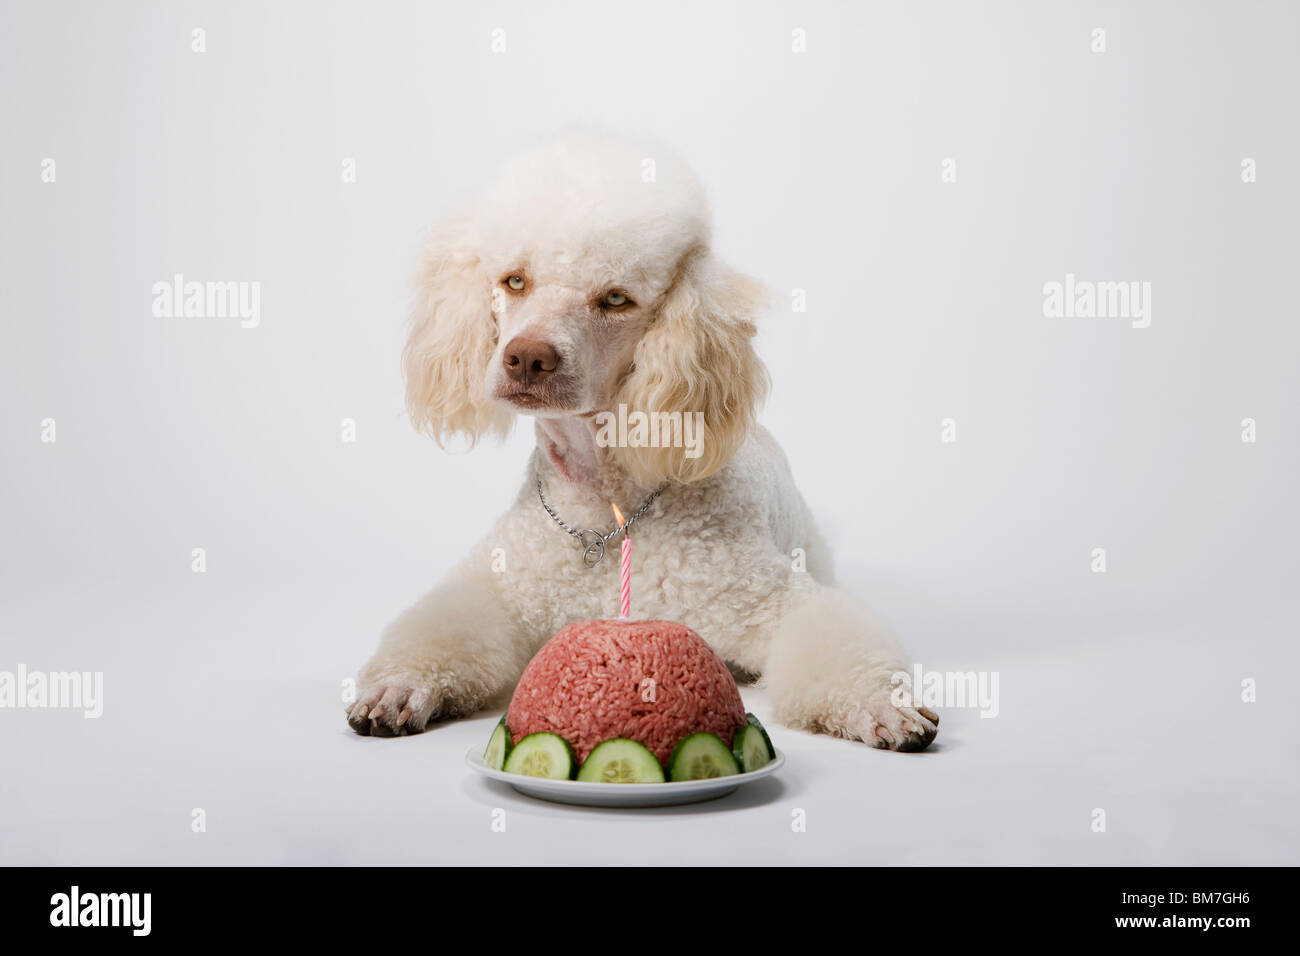 Birthday Cake For Dogs Meat ~ Doggy birthday cake puppy cakes s dog meat u holoportme site